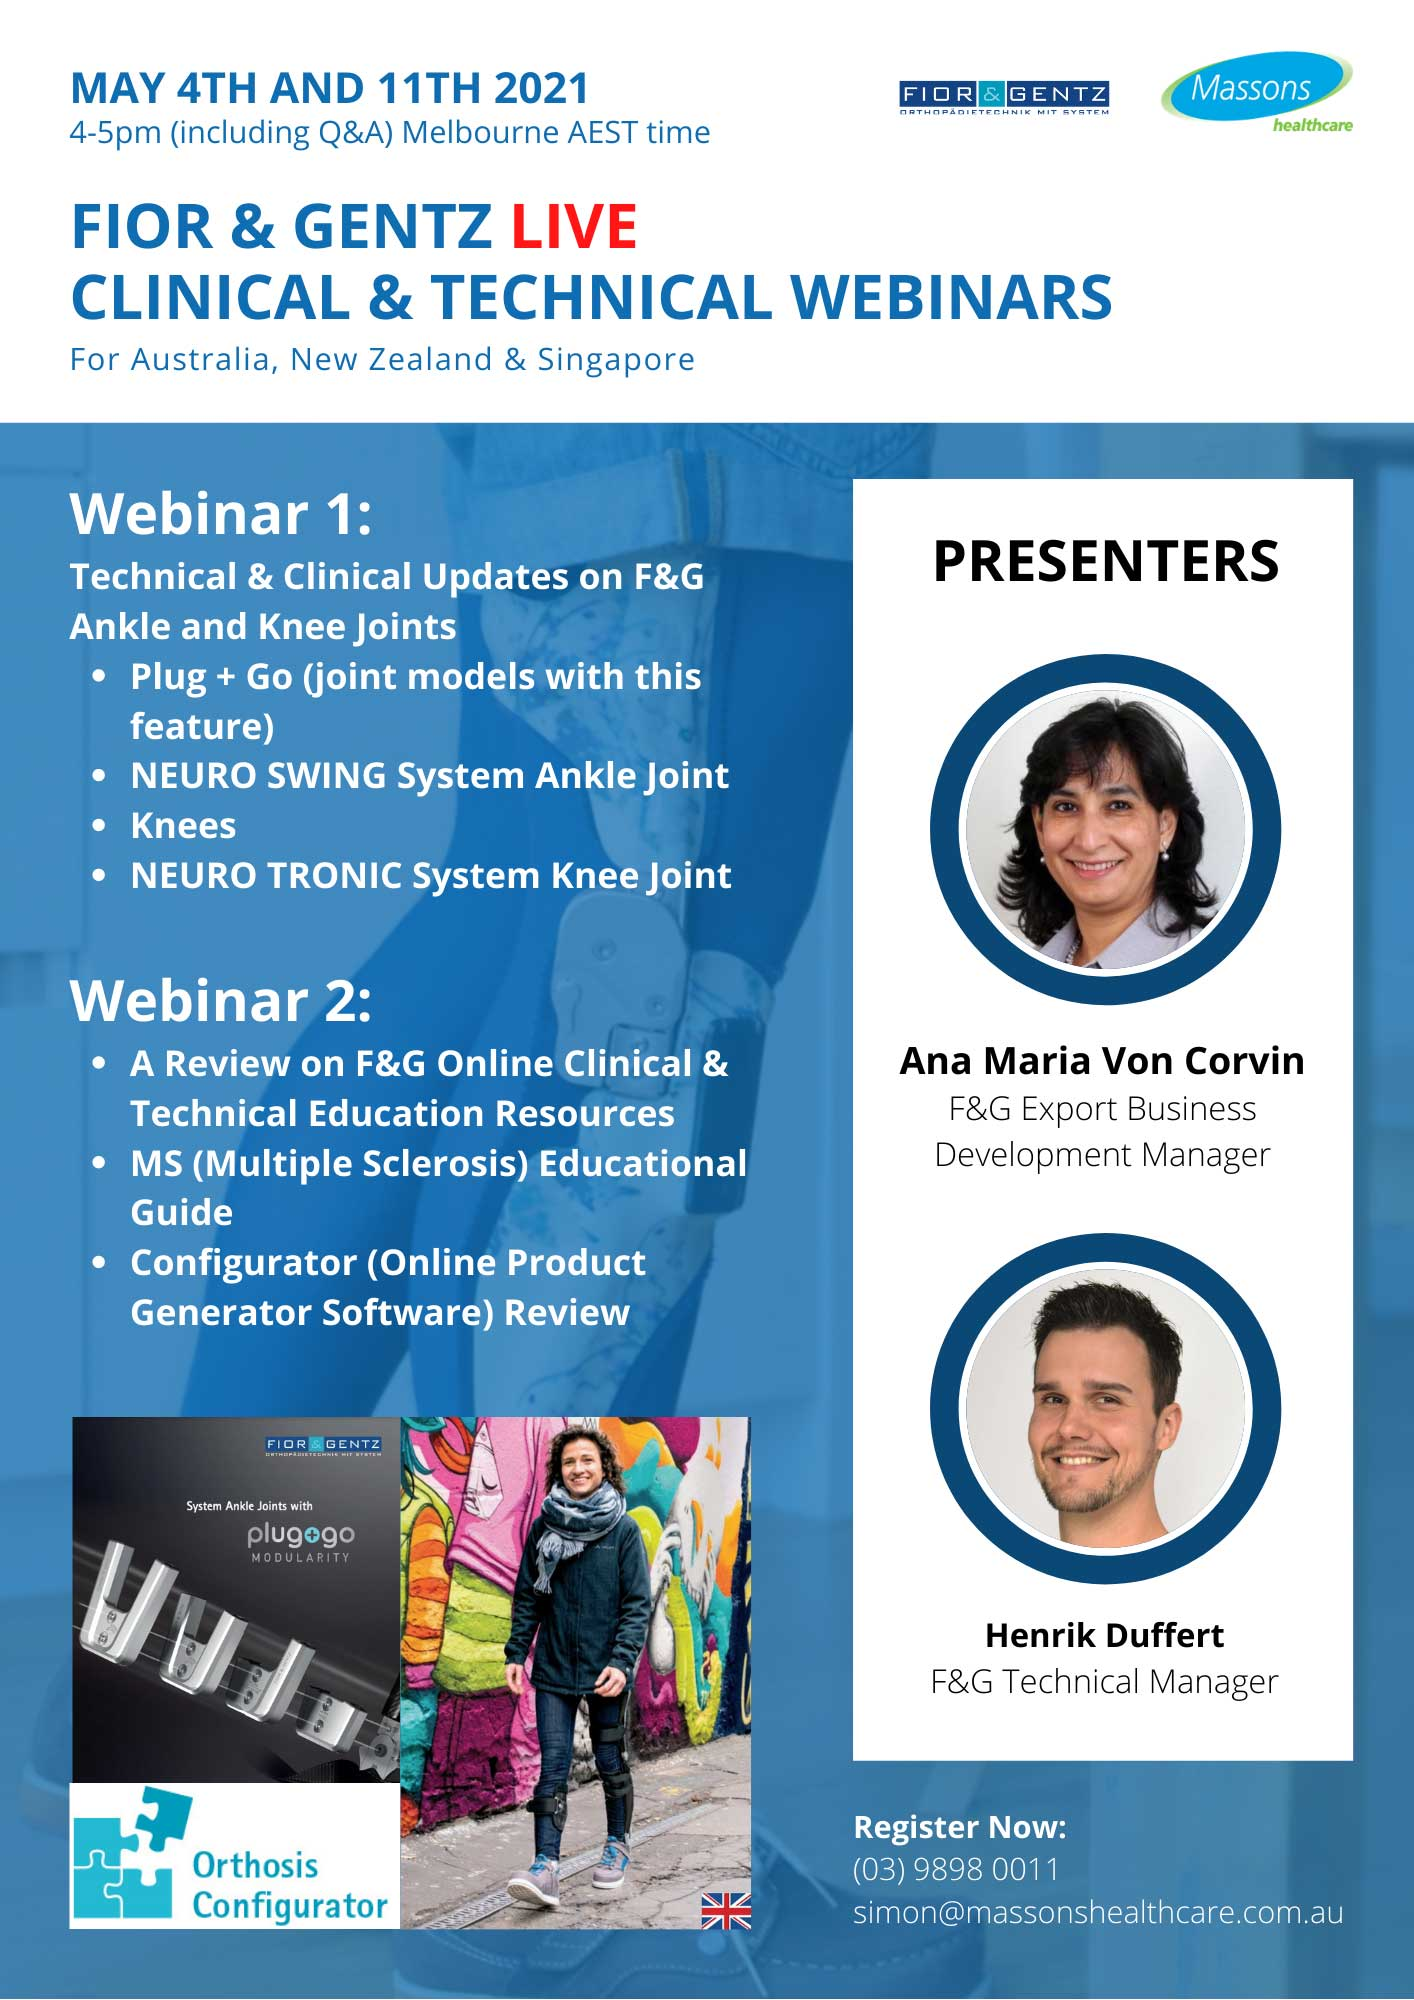 Fior & Gentz Webinar May 4th and 11th